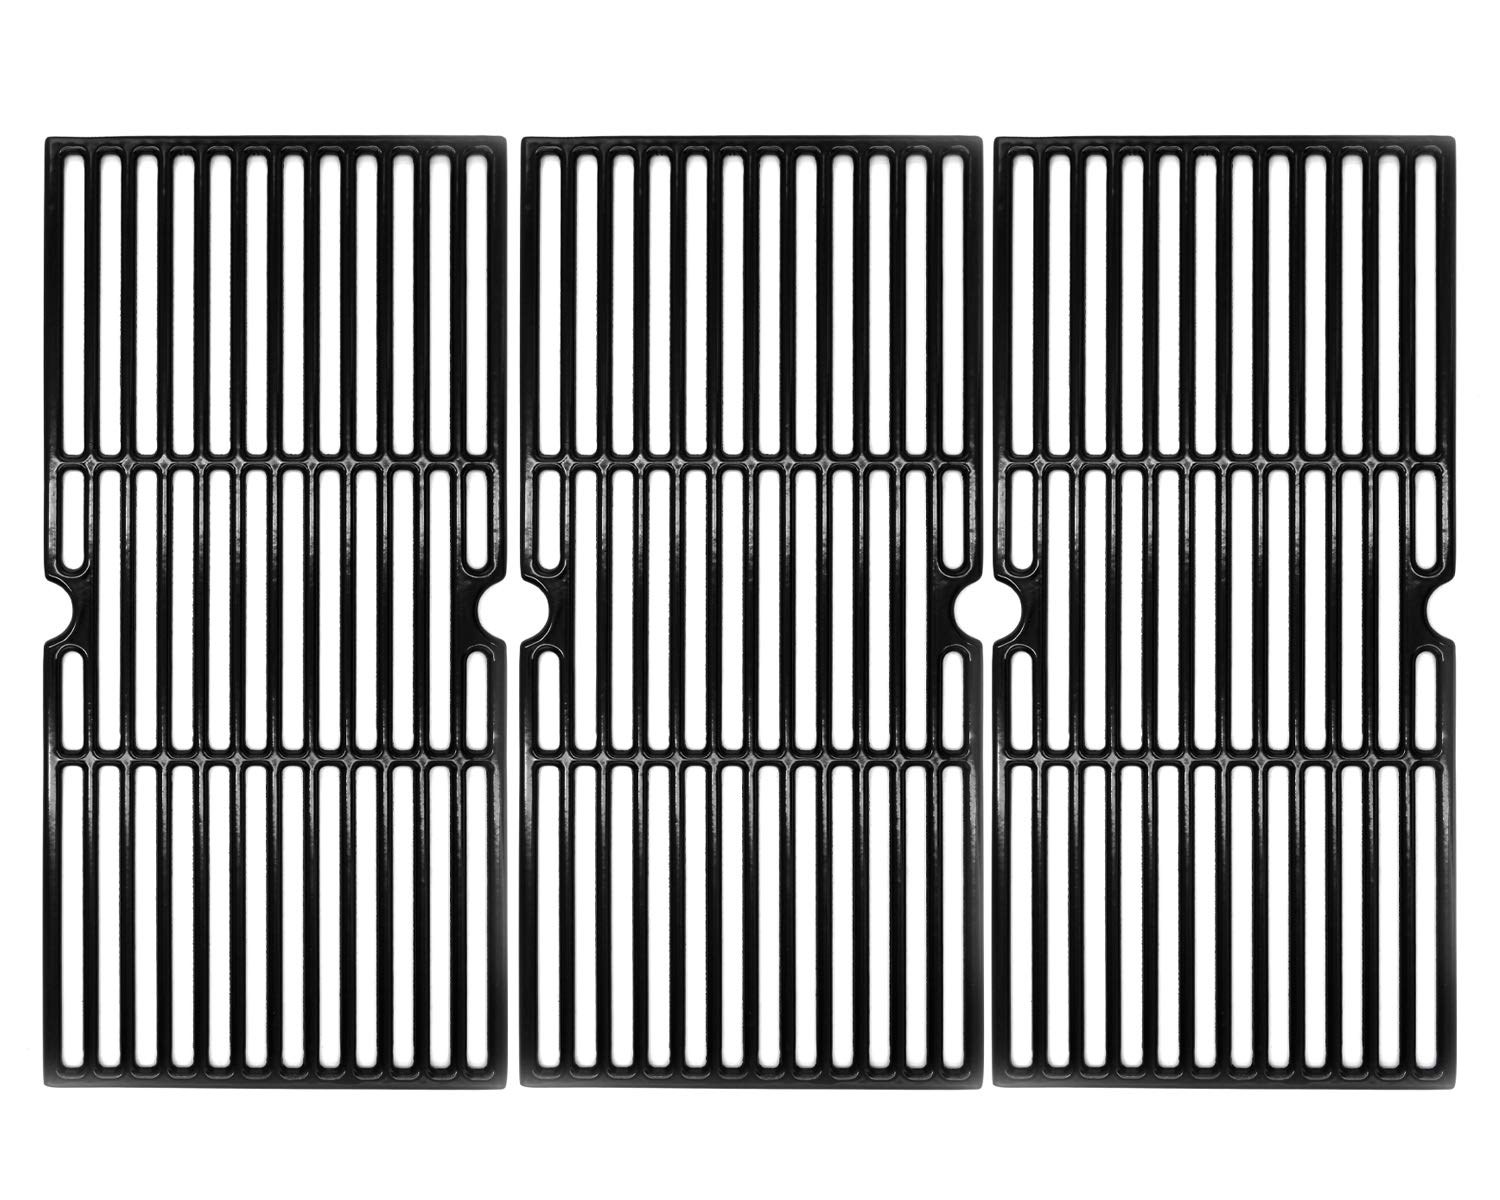 Hongso 19 1/16 Inch Porcelain Coated Cast Iron Cooking Grate Grid Grill Replacement for Brinkmann 810-1750-S, 810-1751-S, 810-3551-0 Gas Grill Models, BBQ Grill Grates, Set of 3 (PCB006) by Hongso